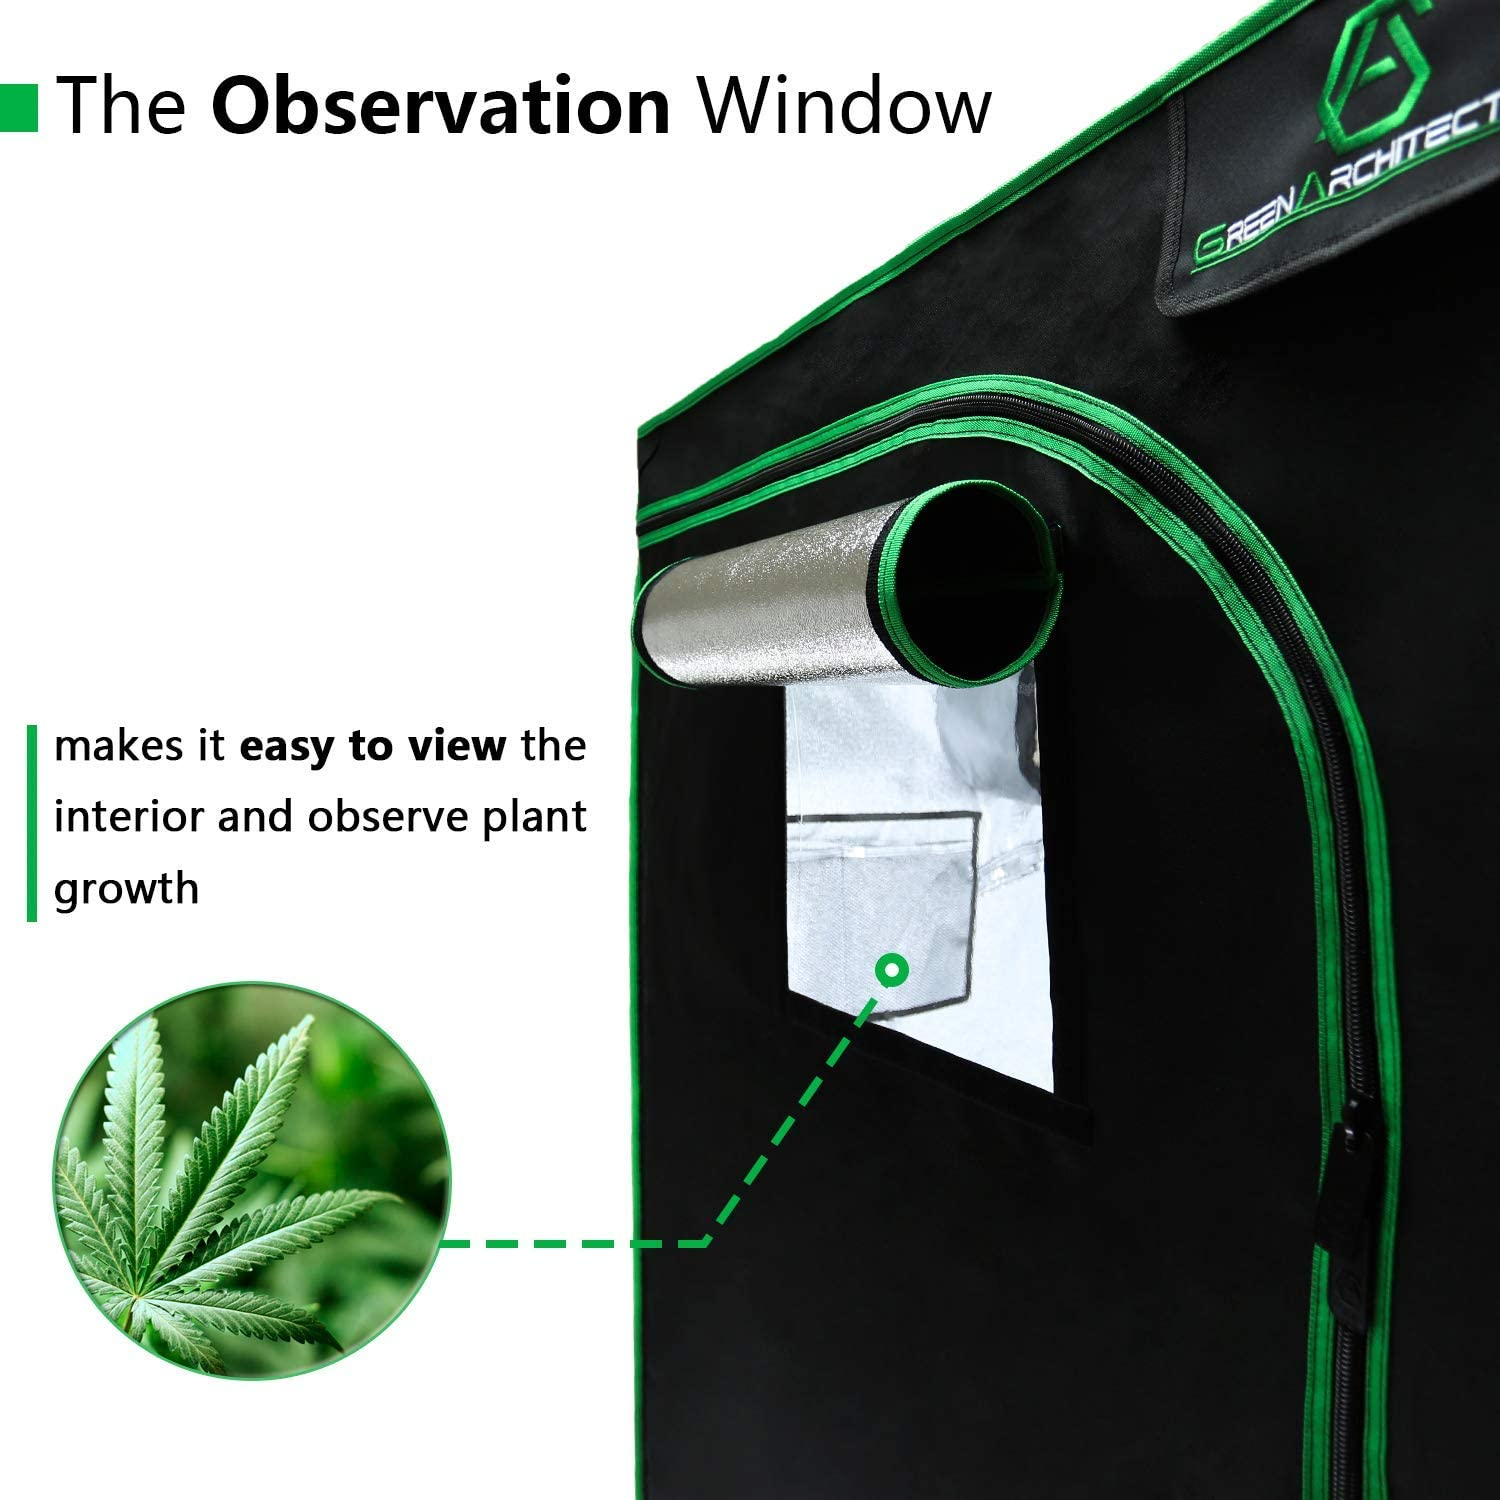 for 1-2 Plants GA Grow Tent 24x24x48 Reflective Mylar Hydroponic Grow Tent with Observation Window and Waterproof Floor Tray for Indoor Plant Growing.2x2